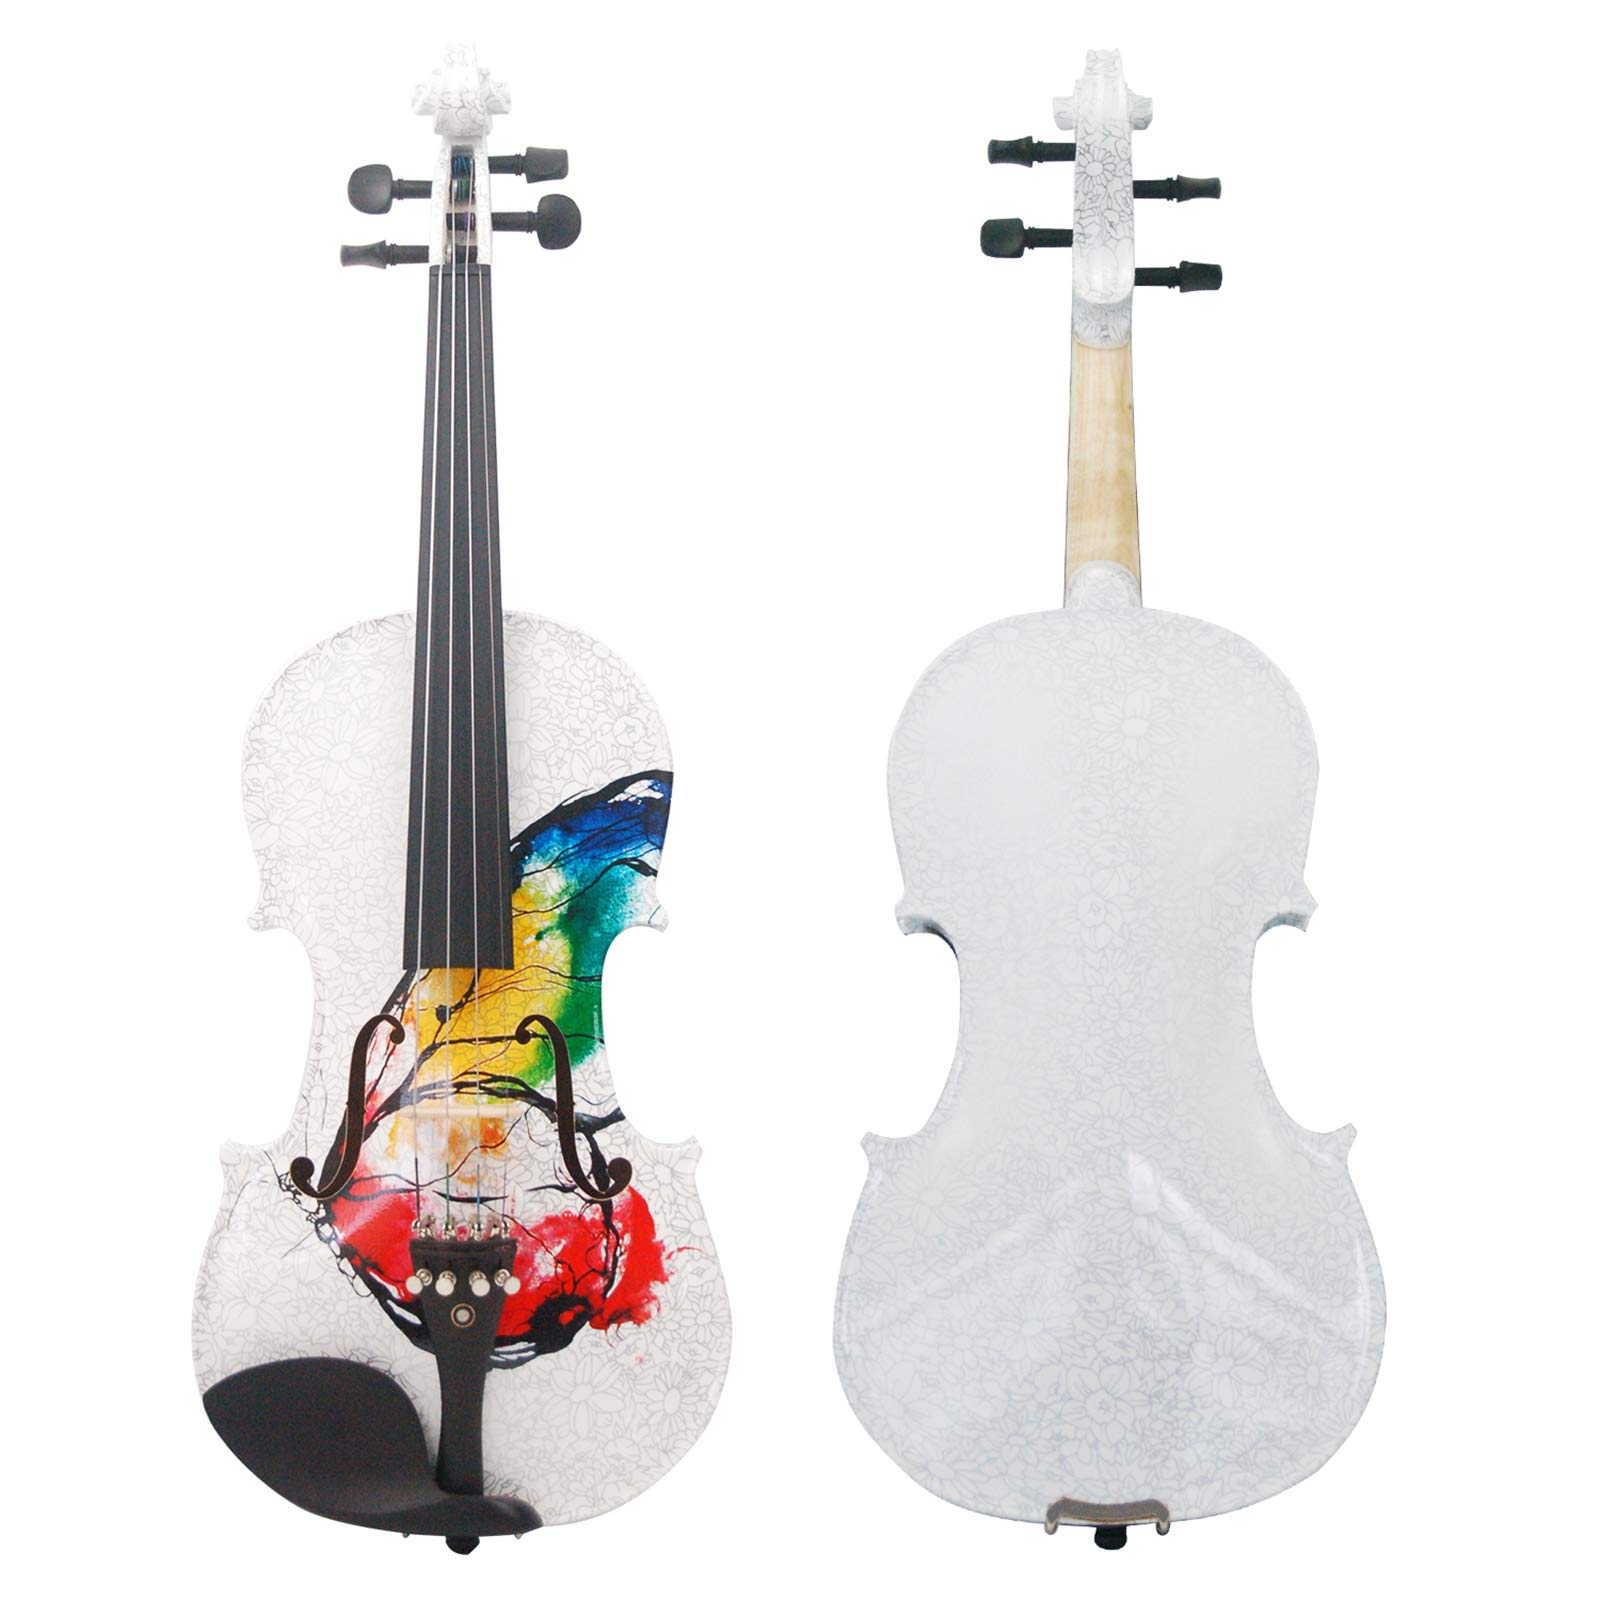 Kinglos 4/4 Butterfly Flower Colored Ebony Fitted Solid Wood Violin Kit with Case, Shoulder Rest, Bow, Rosin, Extra Bridge and Strings Full Size (NHS3002) by Kinglos (Image #2)